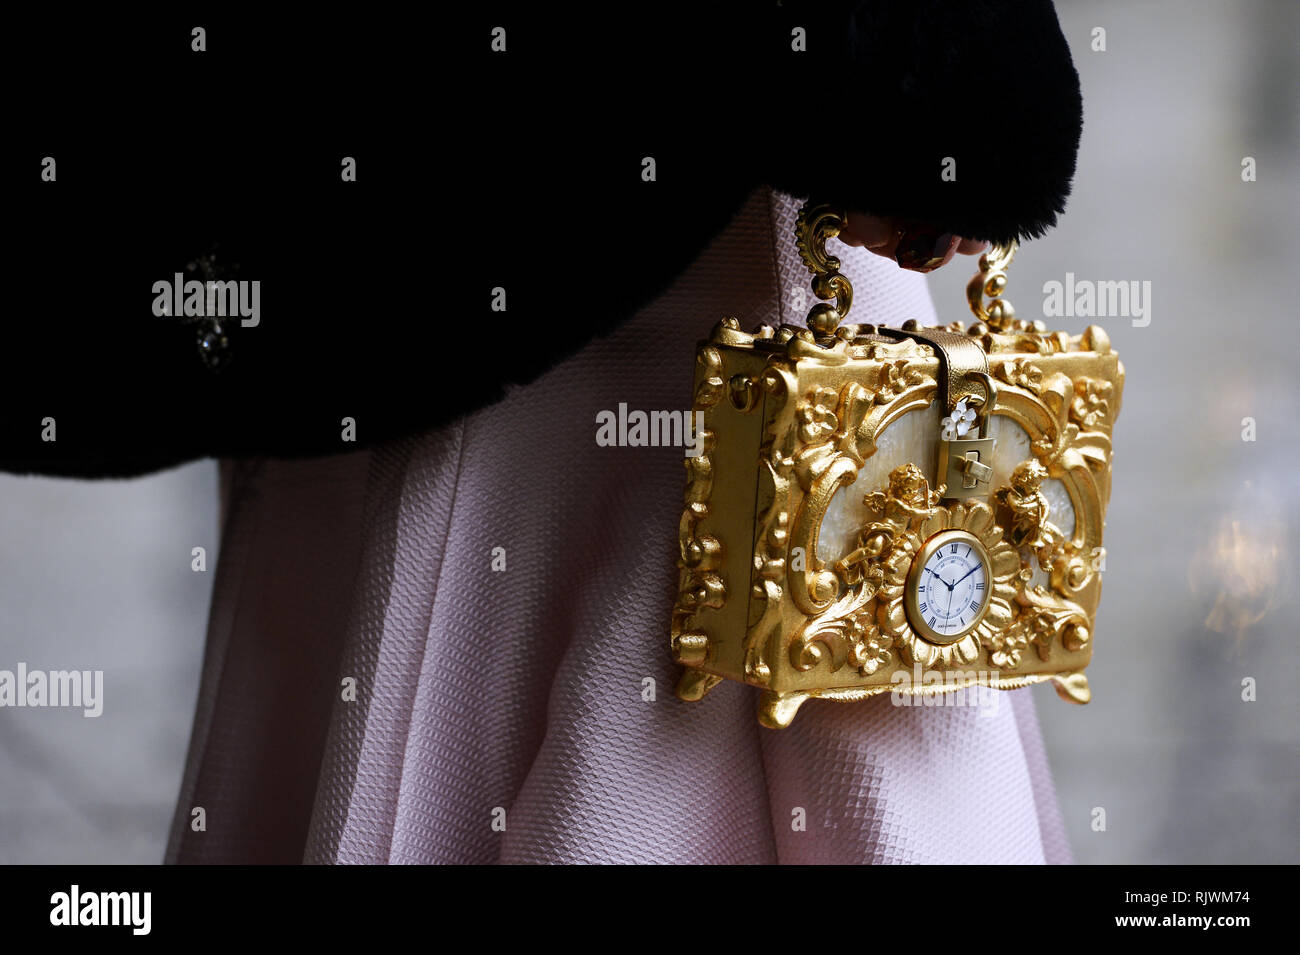 Dolce Gabbana Clock Bag - Streetstyle at Alexis Mabille - Paris Fashion Week - Haute Couture Spring Summer 2019/2020 - Paris - Place Vendôme - Stock Image